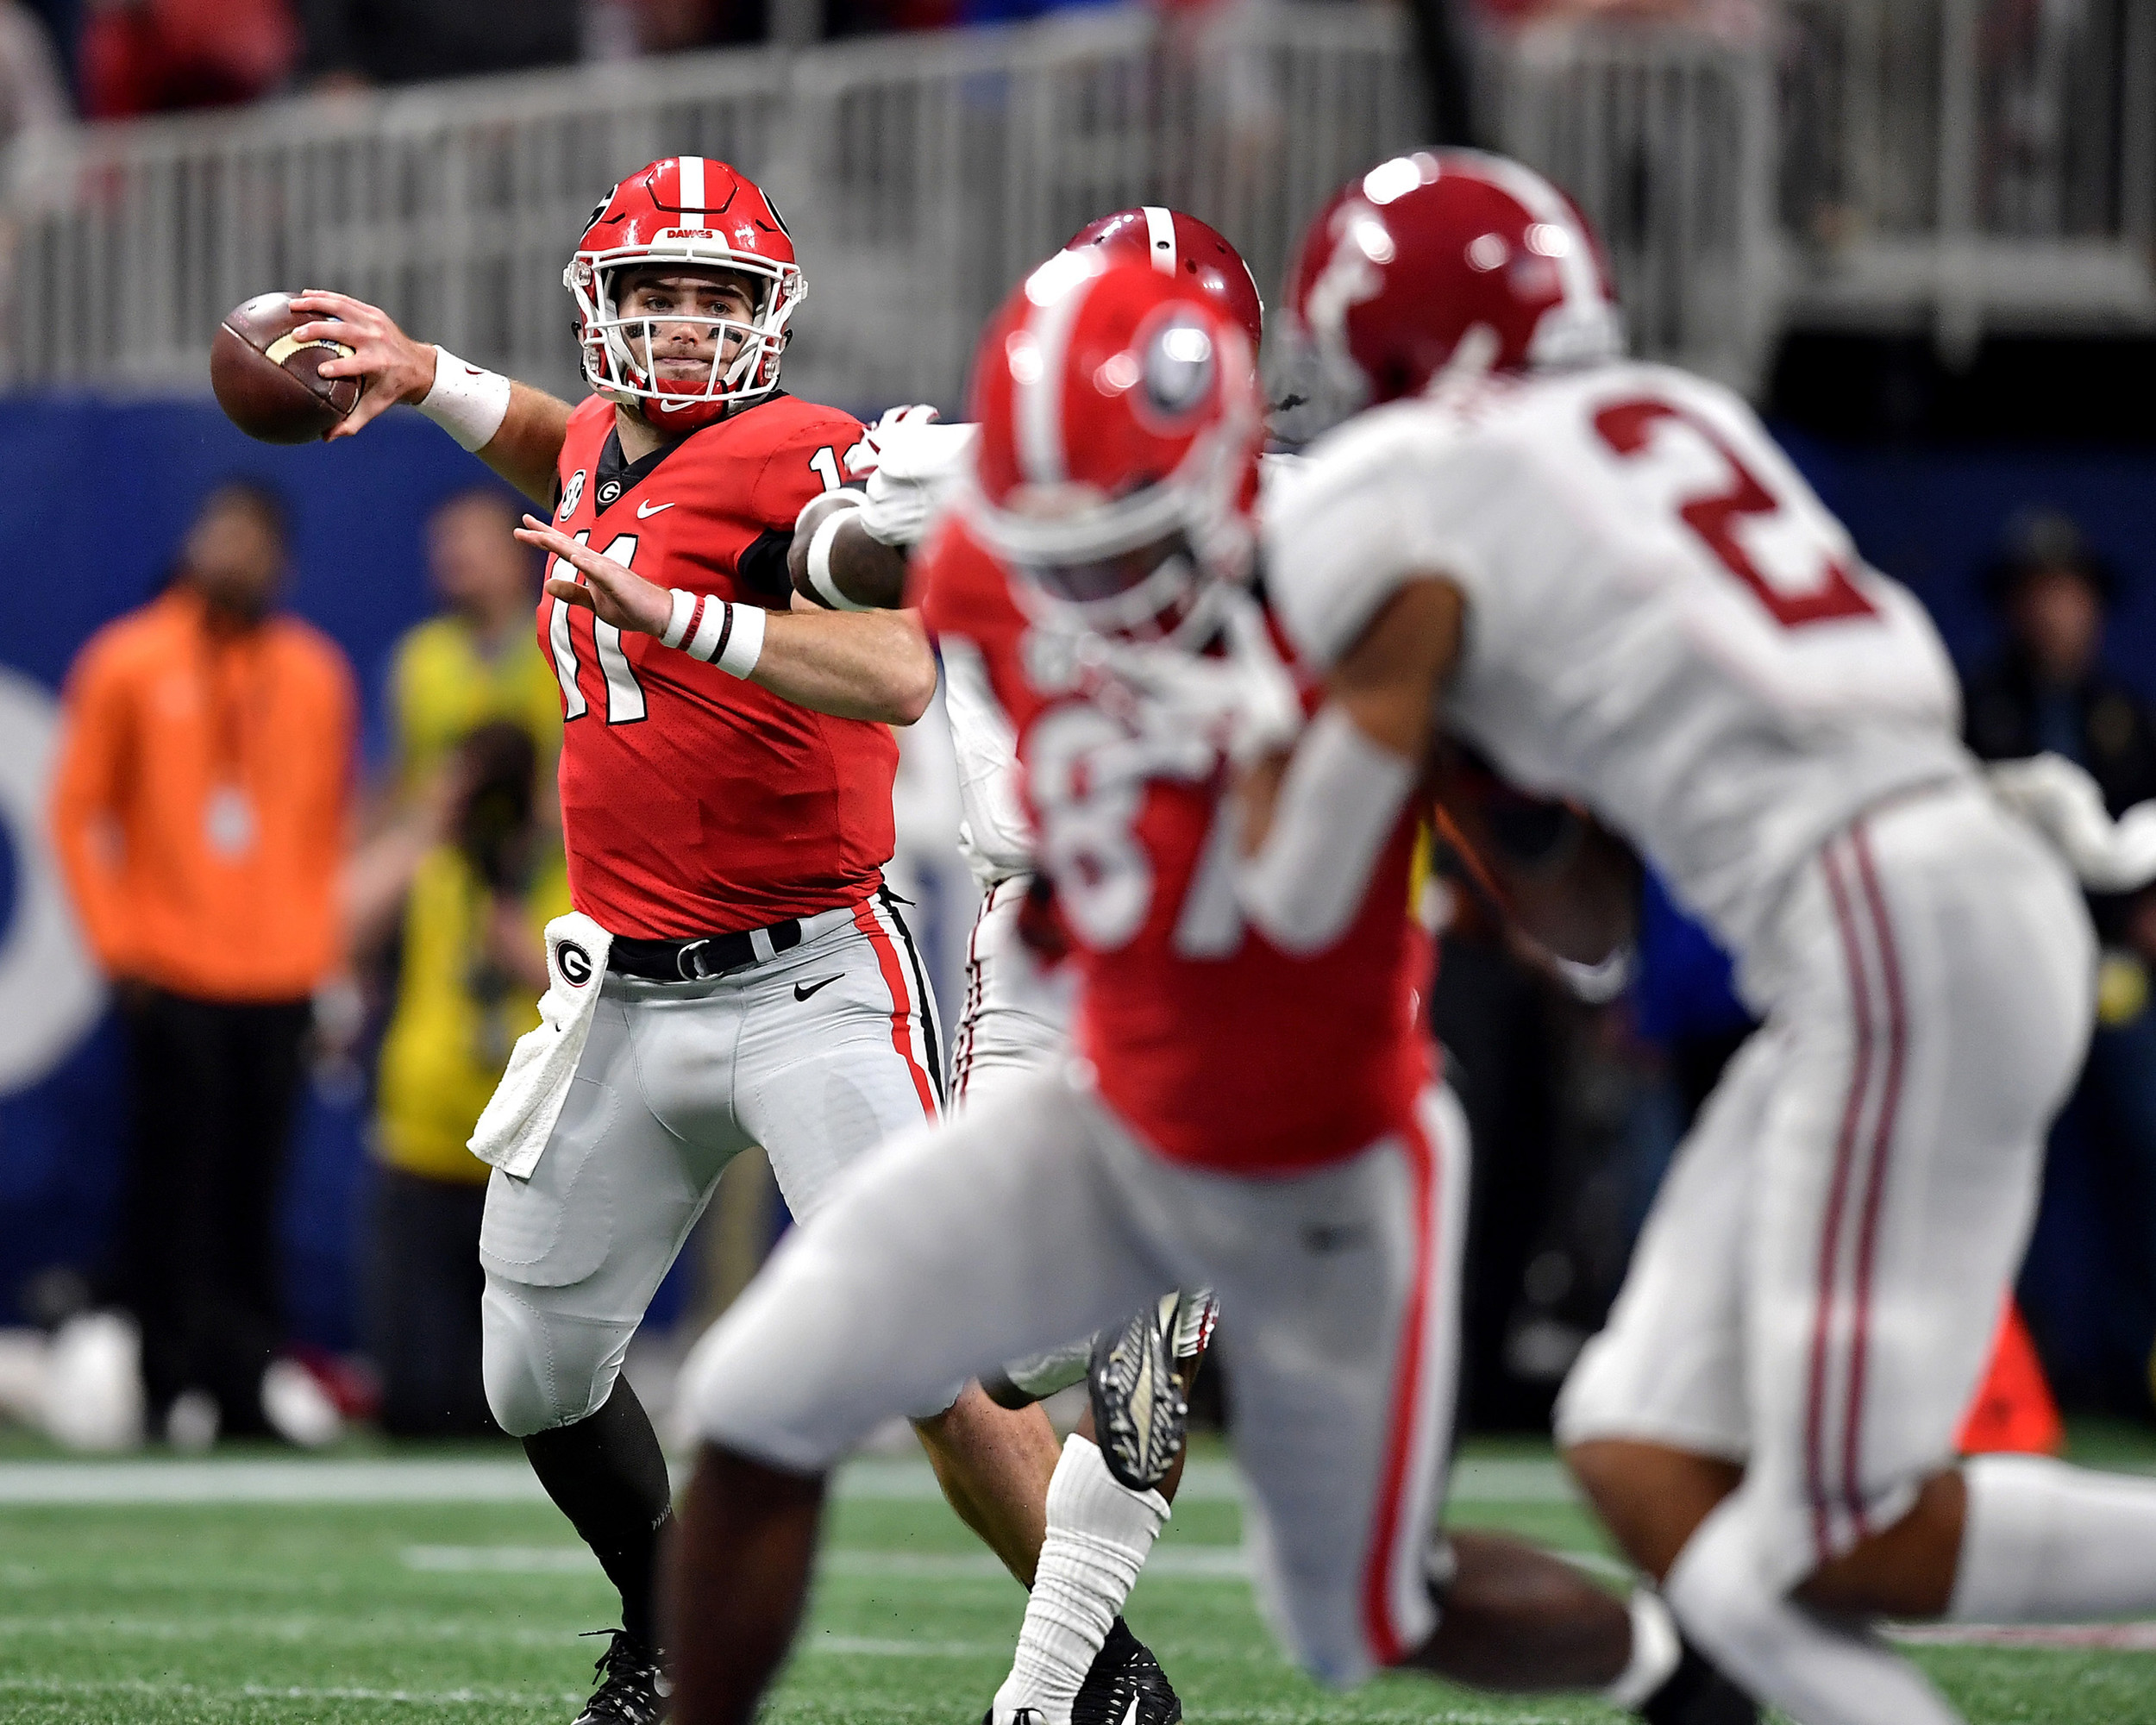 Georgia Bulldogs quarterback Jake Fromm (11) looks for a receiver during the second half of the 2018 SEC Championship football game against the Alabama Crimson Tide at Mercedes-Benz Stadium in Atlanta, Ga., on Dec. 1, 2018. Alabama wins 35-28. (Photo by Lee Walls)